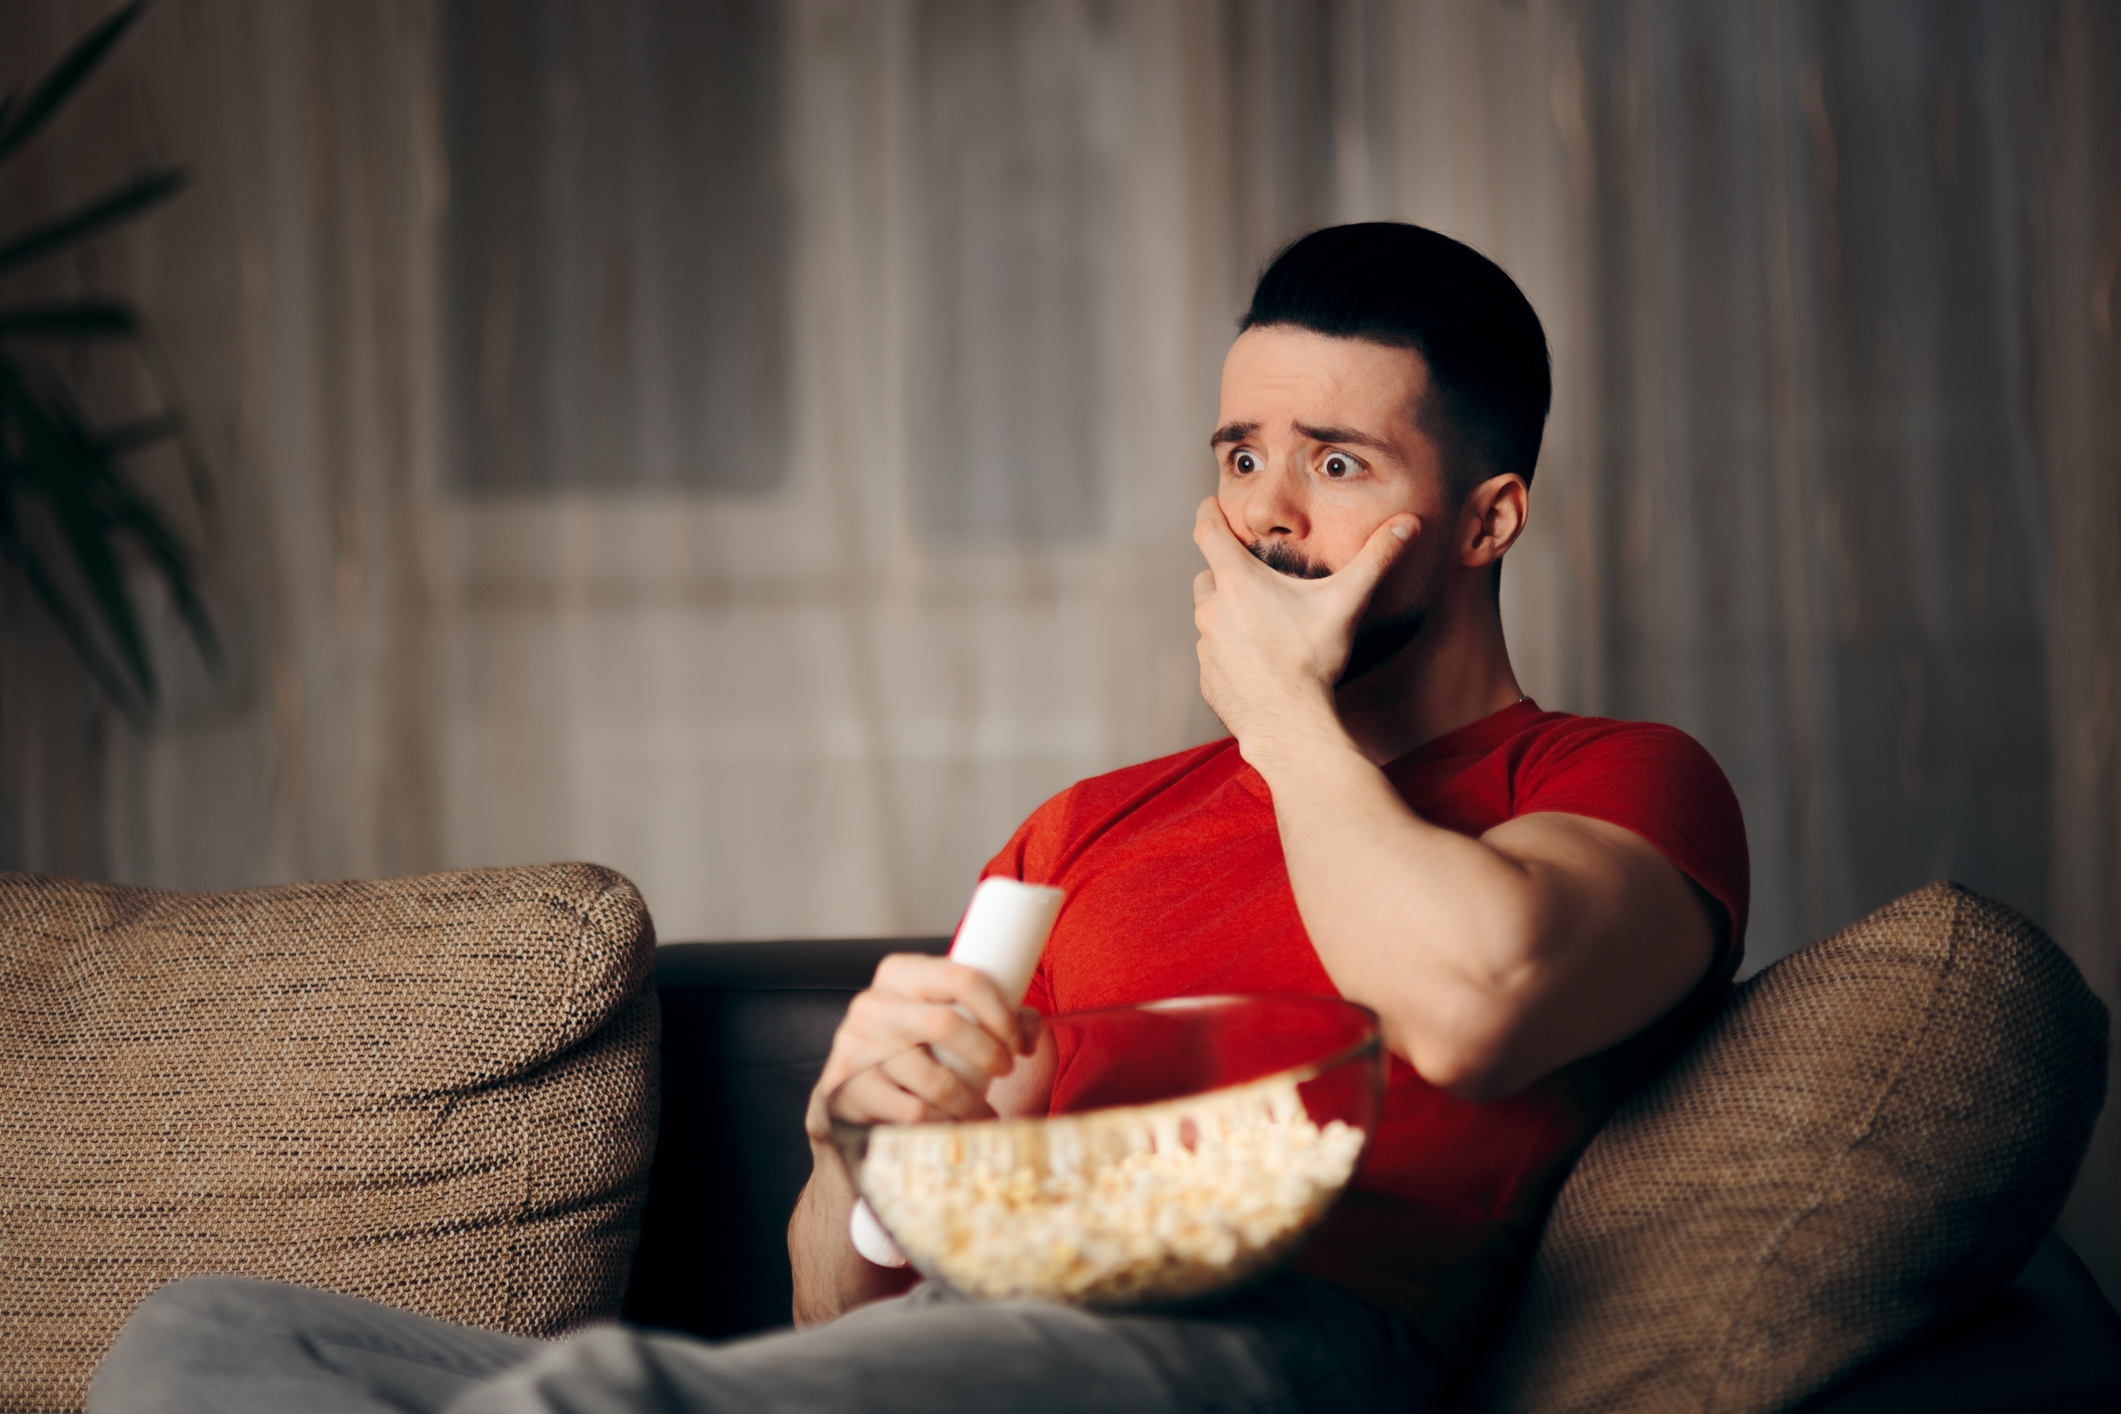 Young millennial guy spending free time binging on favorite show